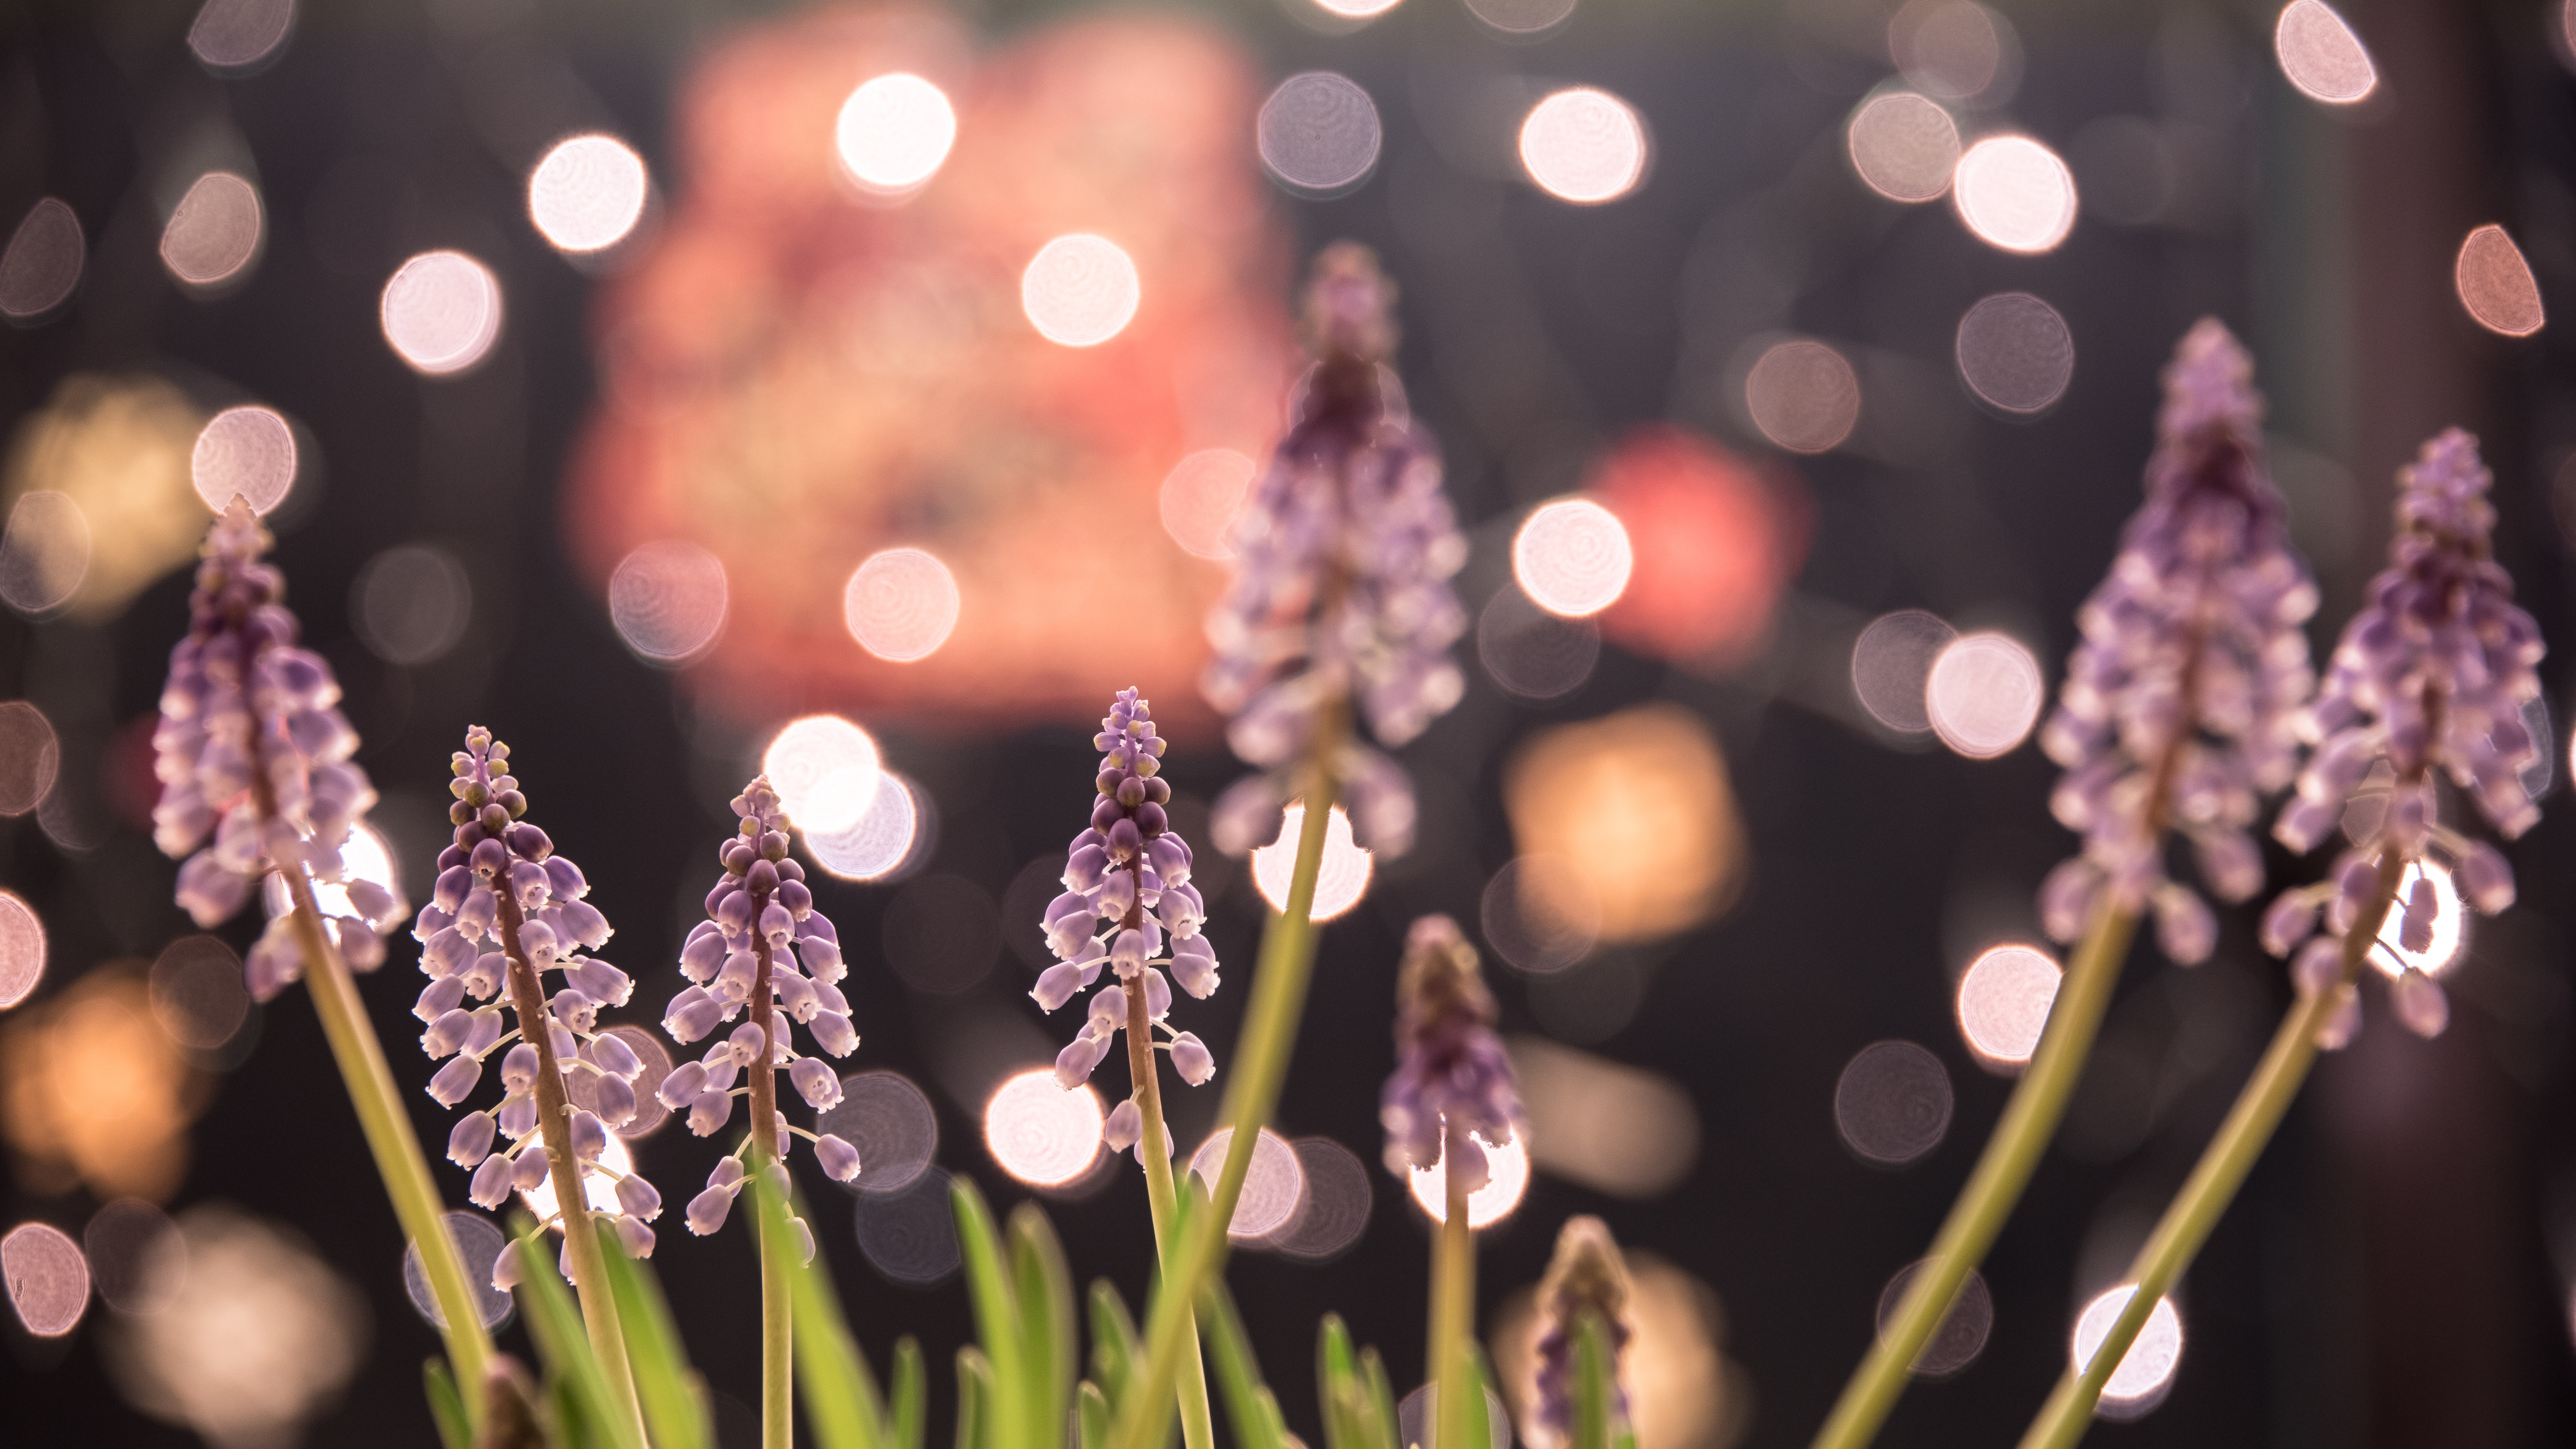 macro photography of pink flowers with bokeh